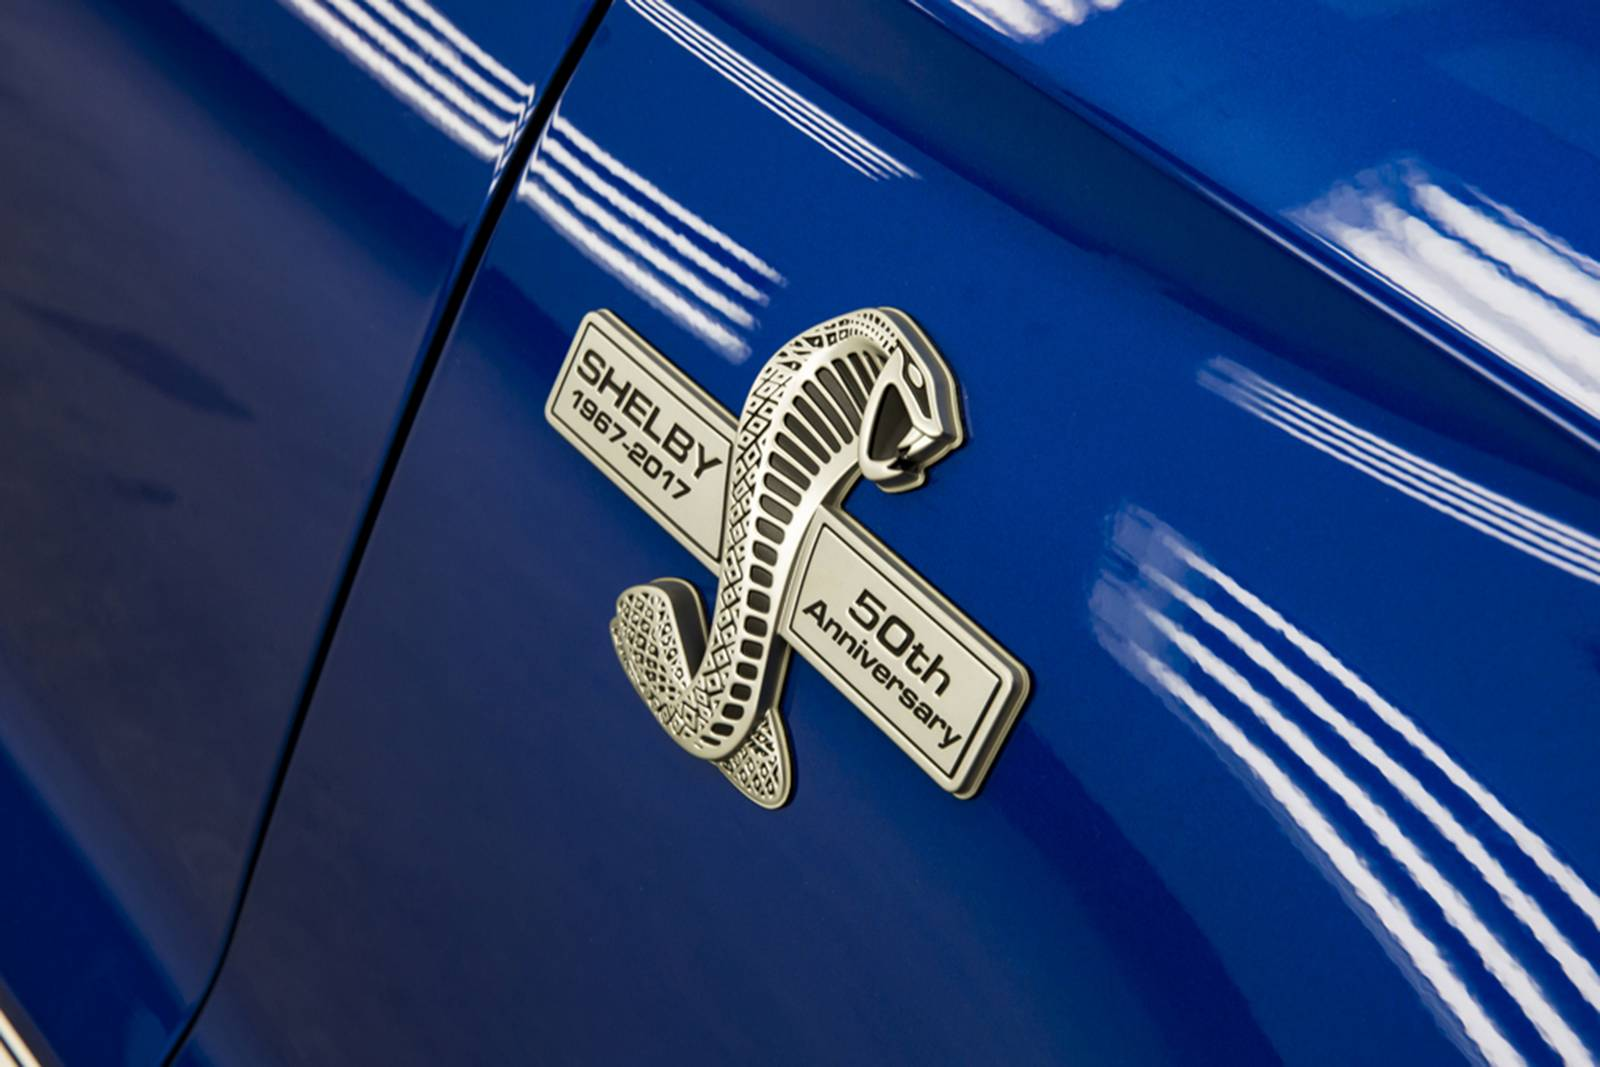 Official 2017 shelby mustang super snake 50th anniversary with the buycottarizona Choice Image